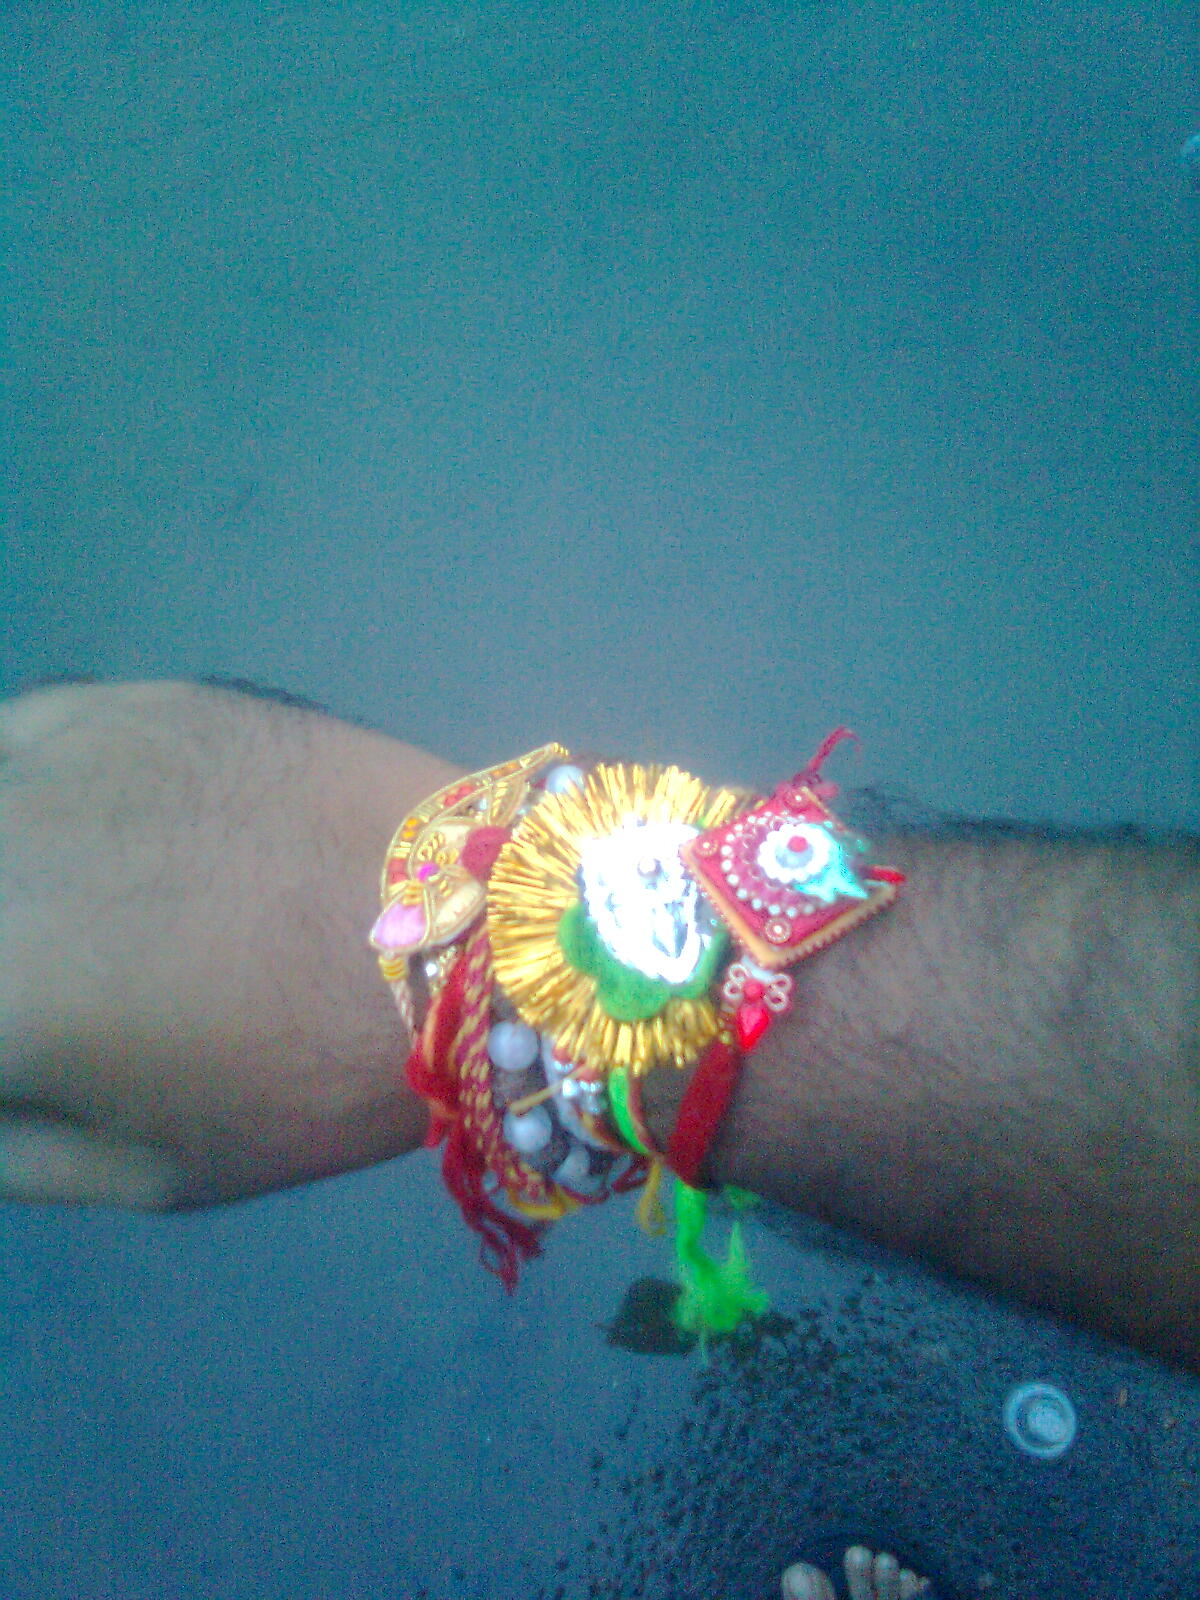 my wrist with rakhi in raksha bandhan day of brothers and sisters